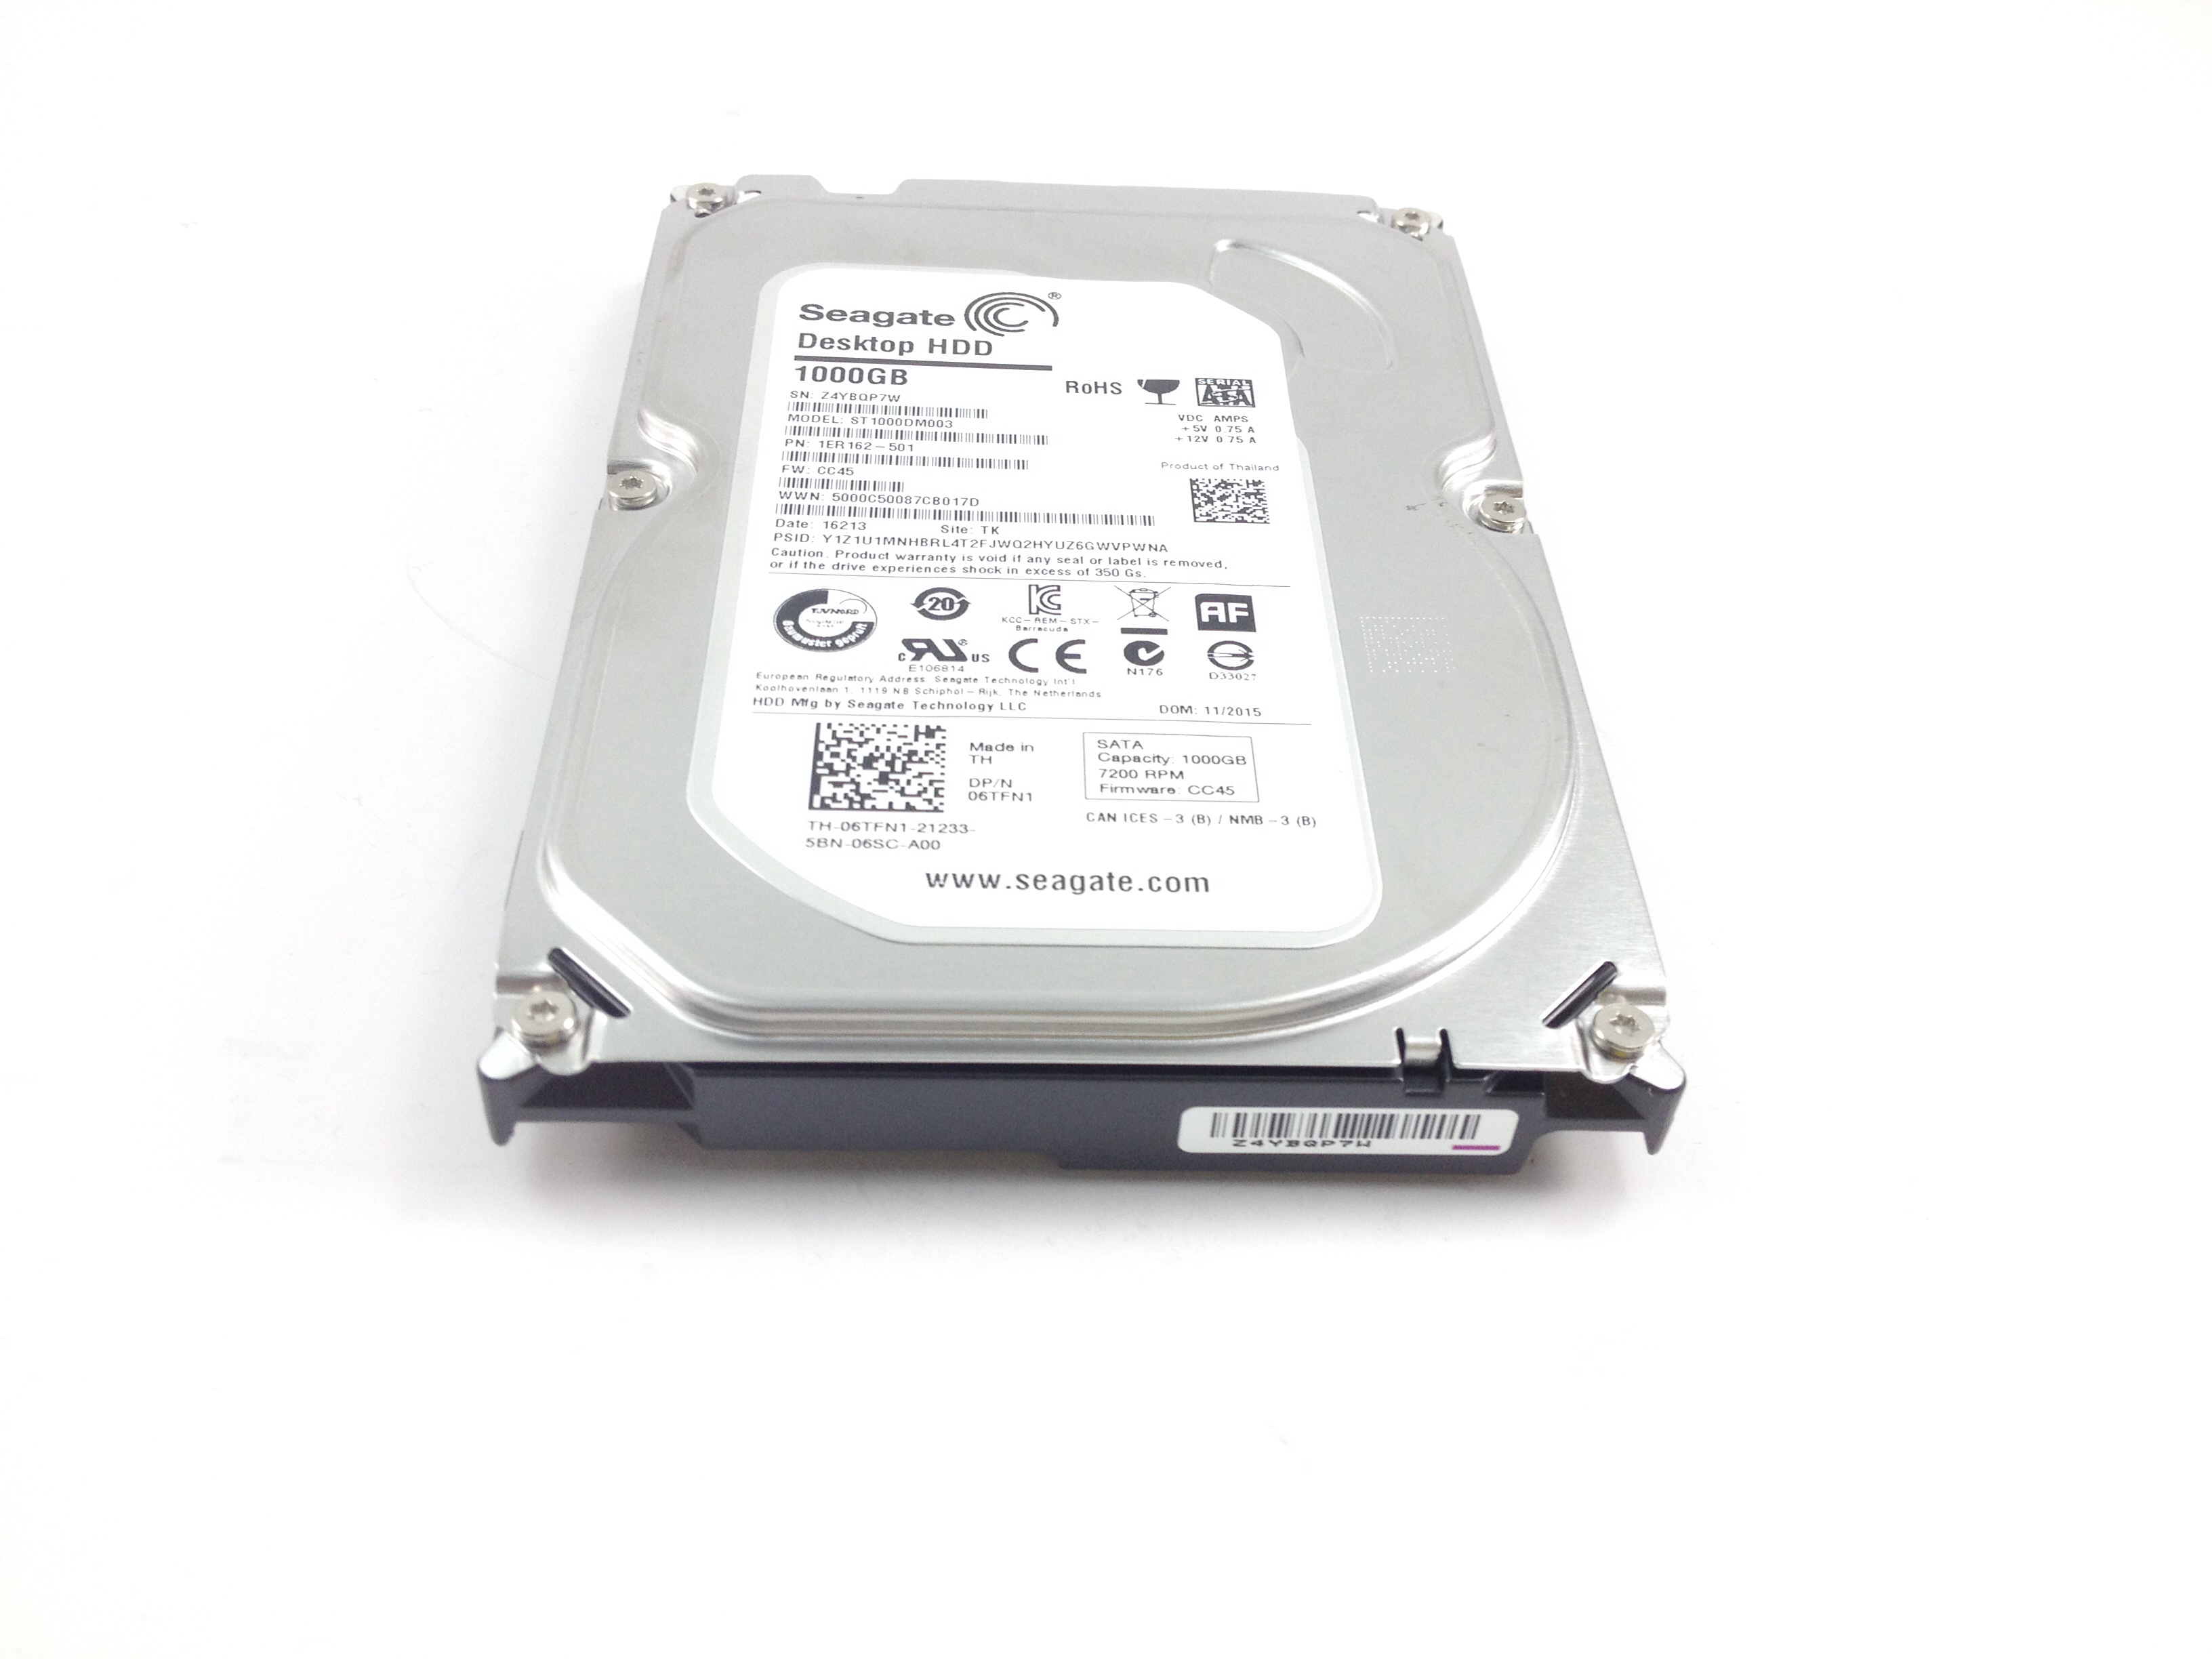 Details about 06TFN1 Dell Seagate 1TB 7 2K SATA 3 5'' Hard Drive